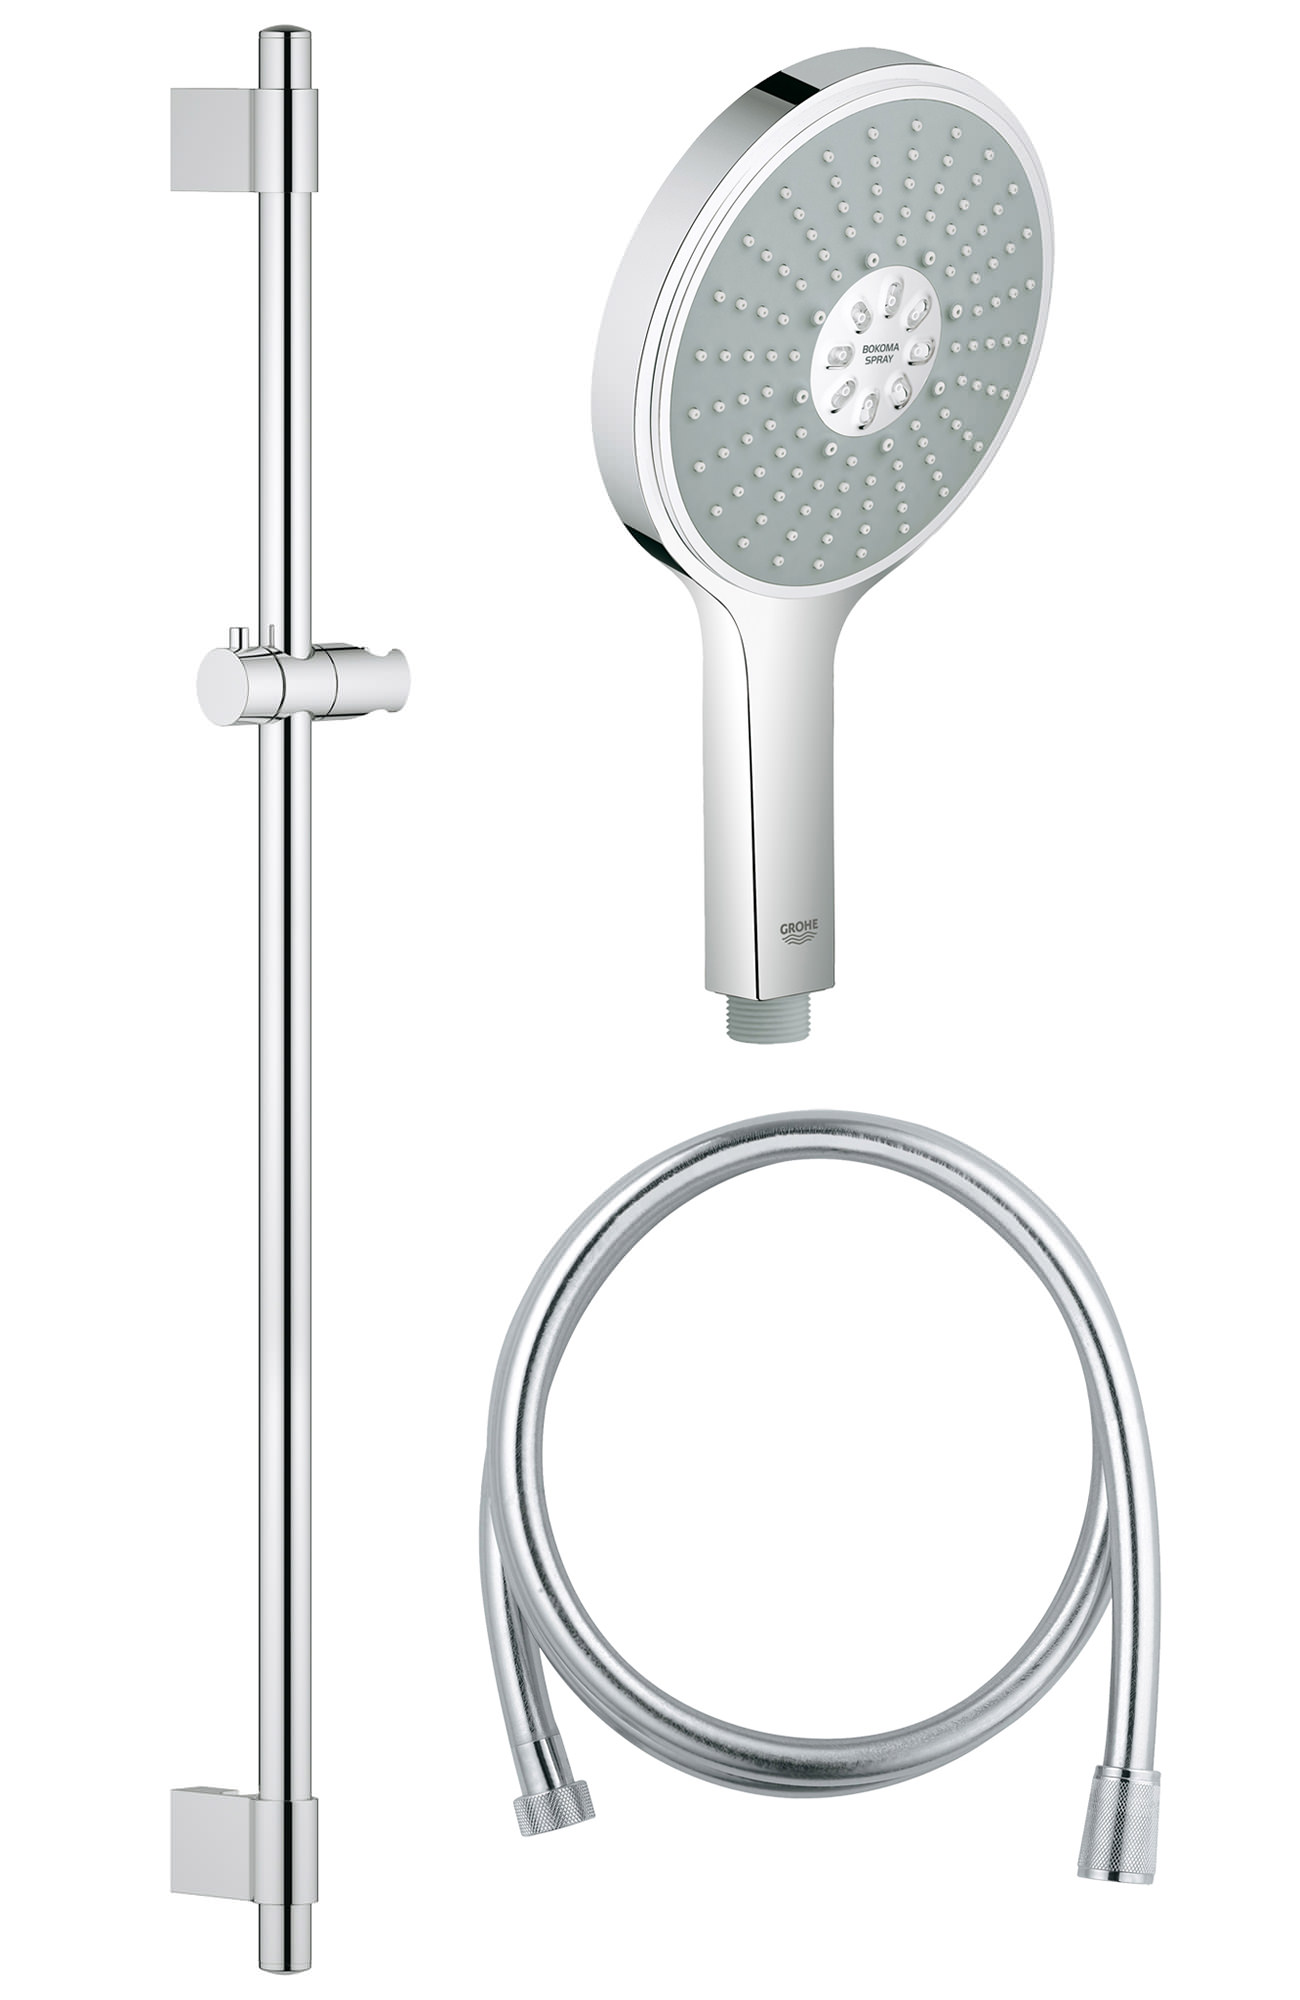 grohe spa power and soul cosmopolitan 160 shower rail set. Black Bedroom Furniture Sets. Home Design Ideas